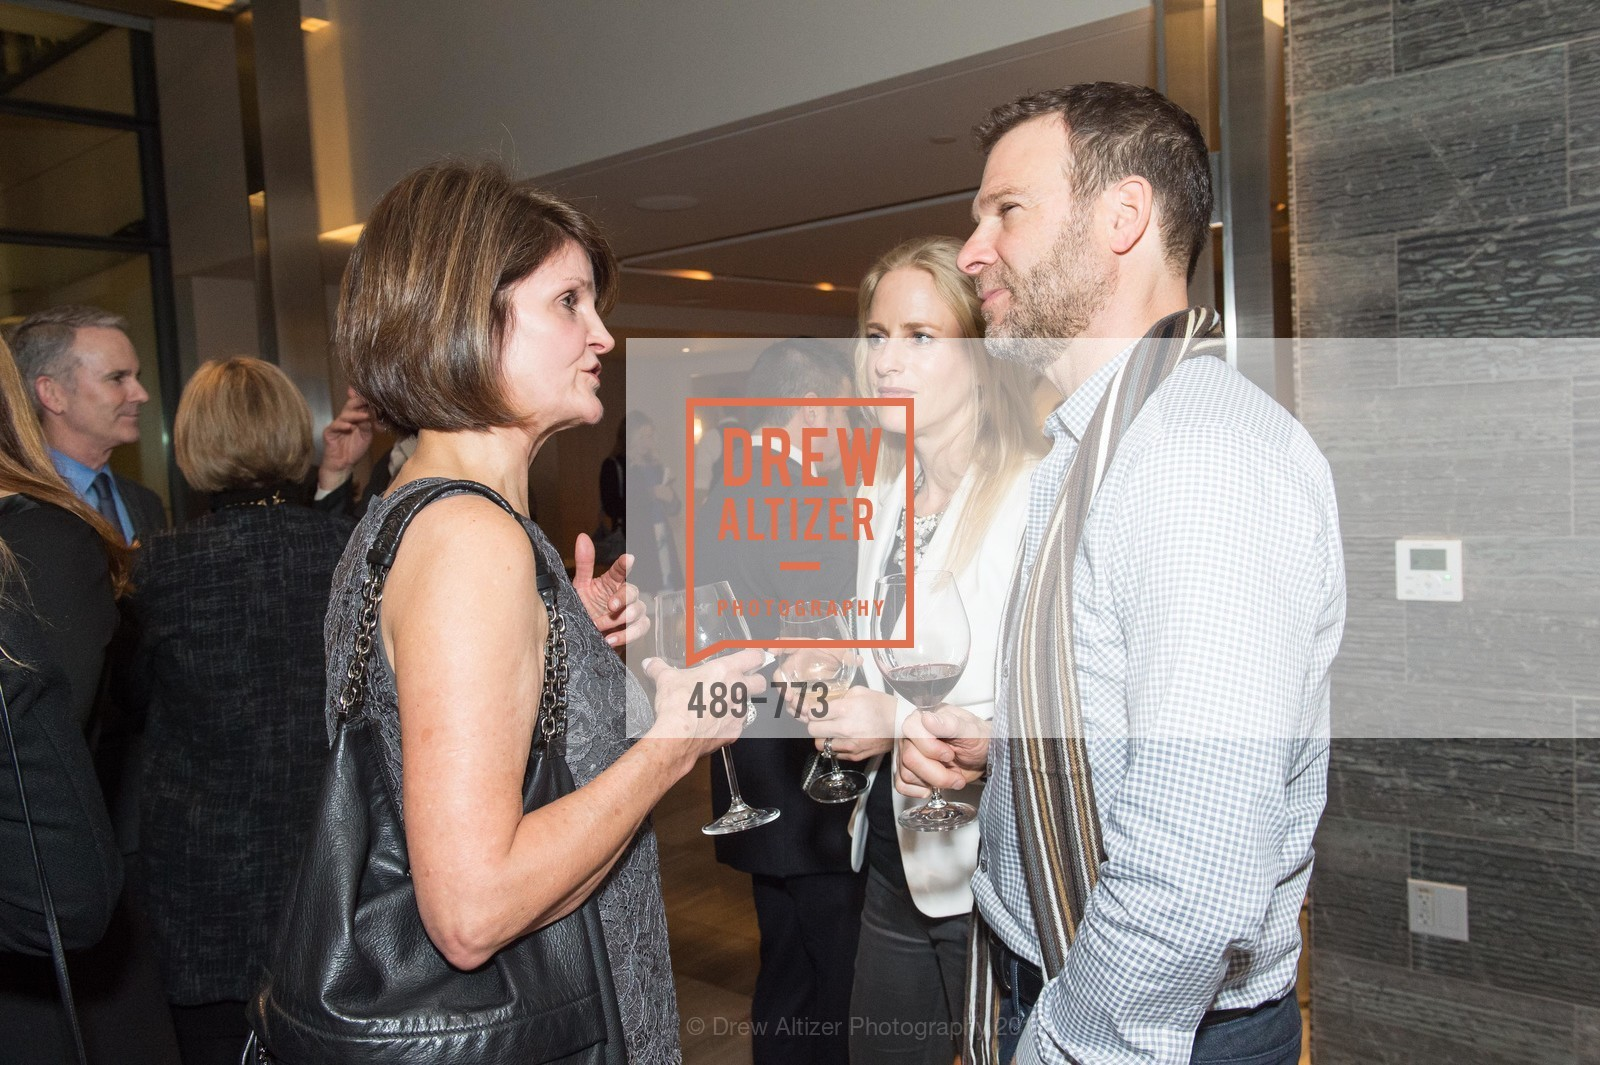 Jessica Wynne, Robert Levy, Sotheby's International Realty's Celebrates the New Year, The Battery, Penthouse. 717 Battery St, January 27th, 2016